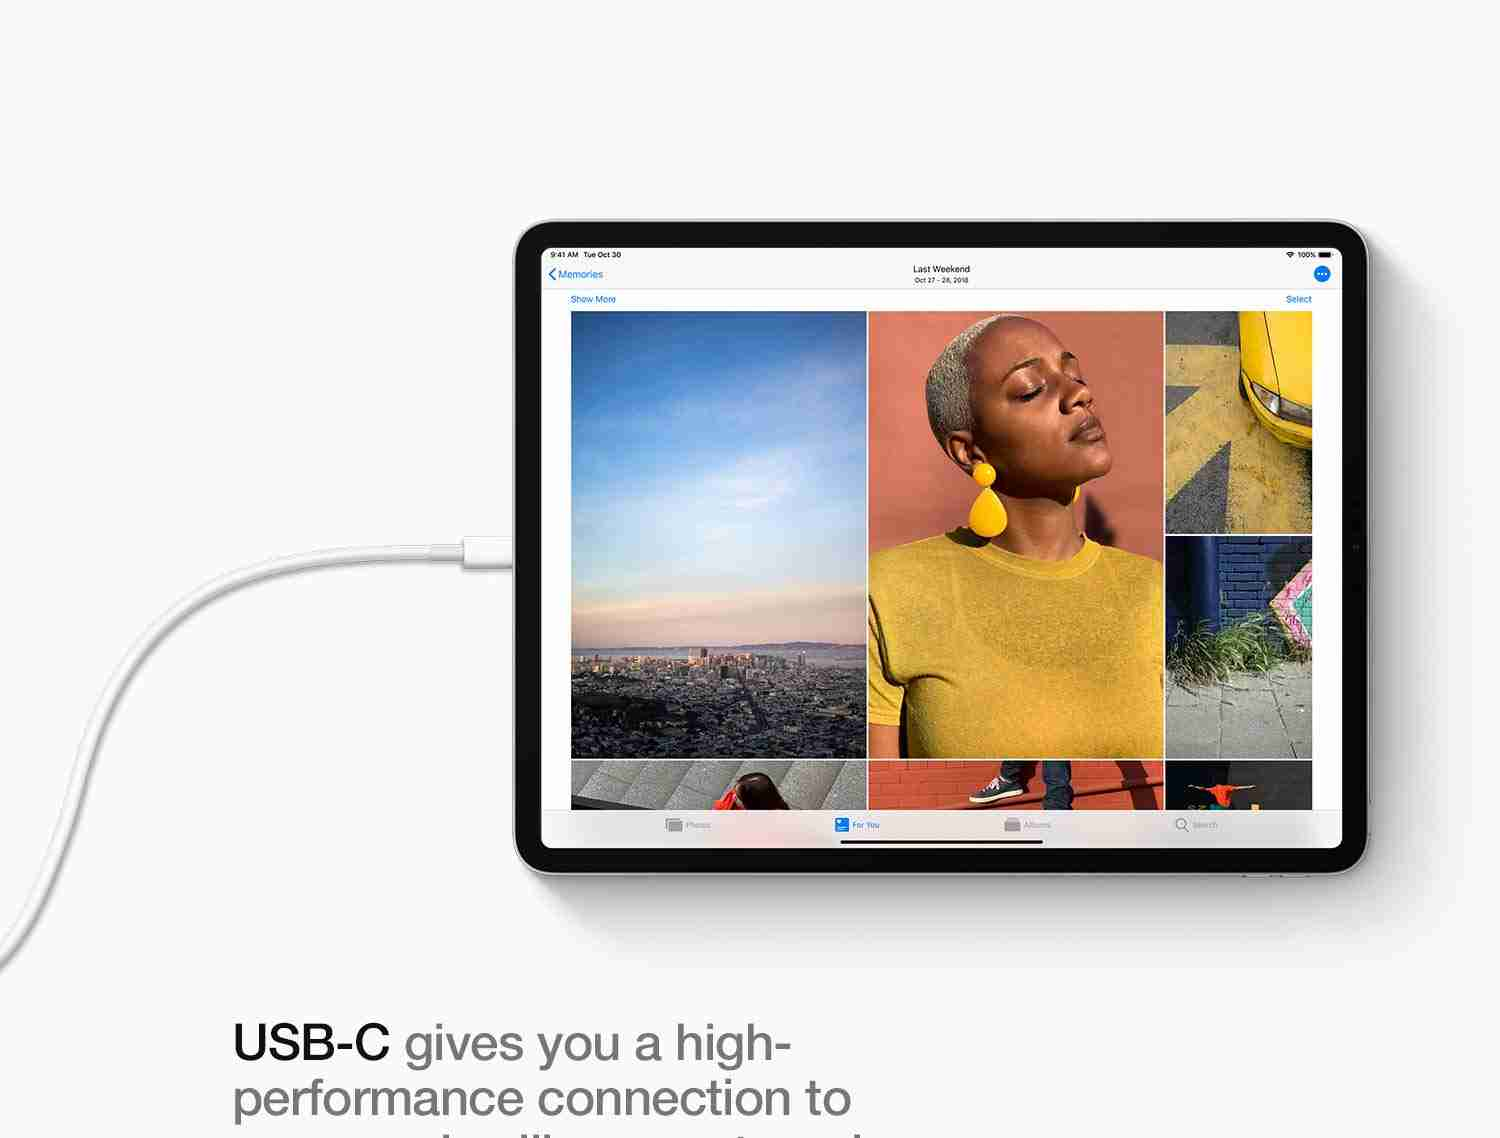 iPad Pro has a single USB-C port